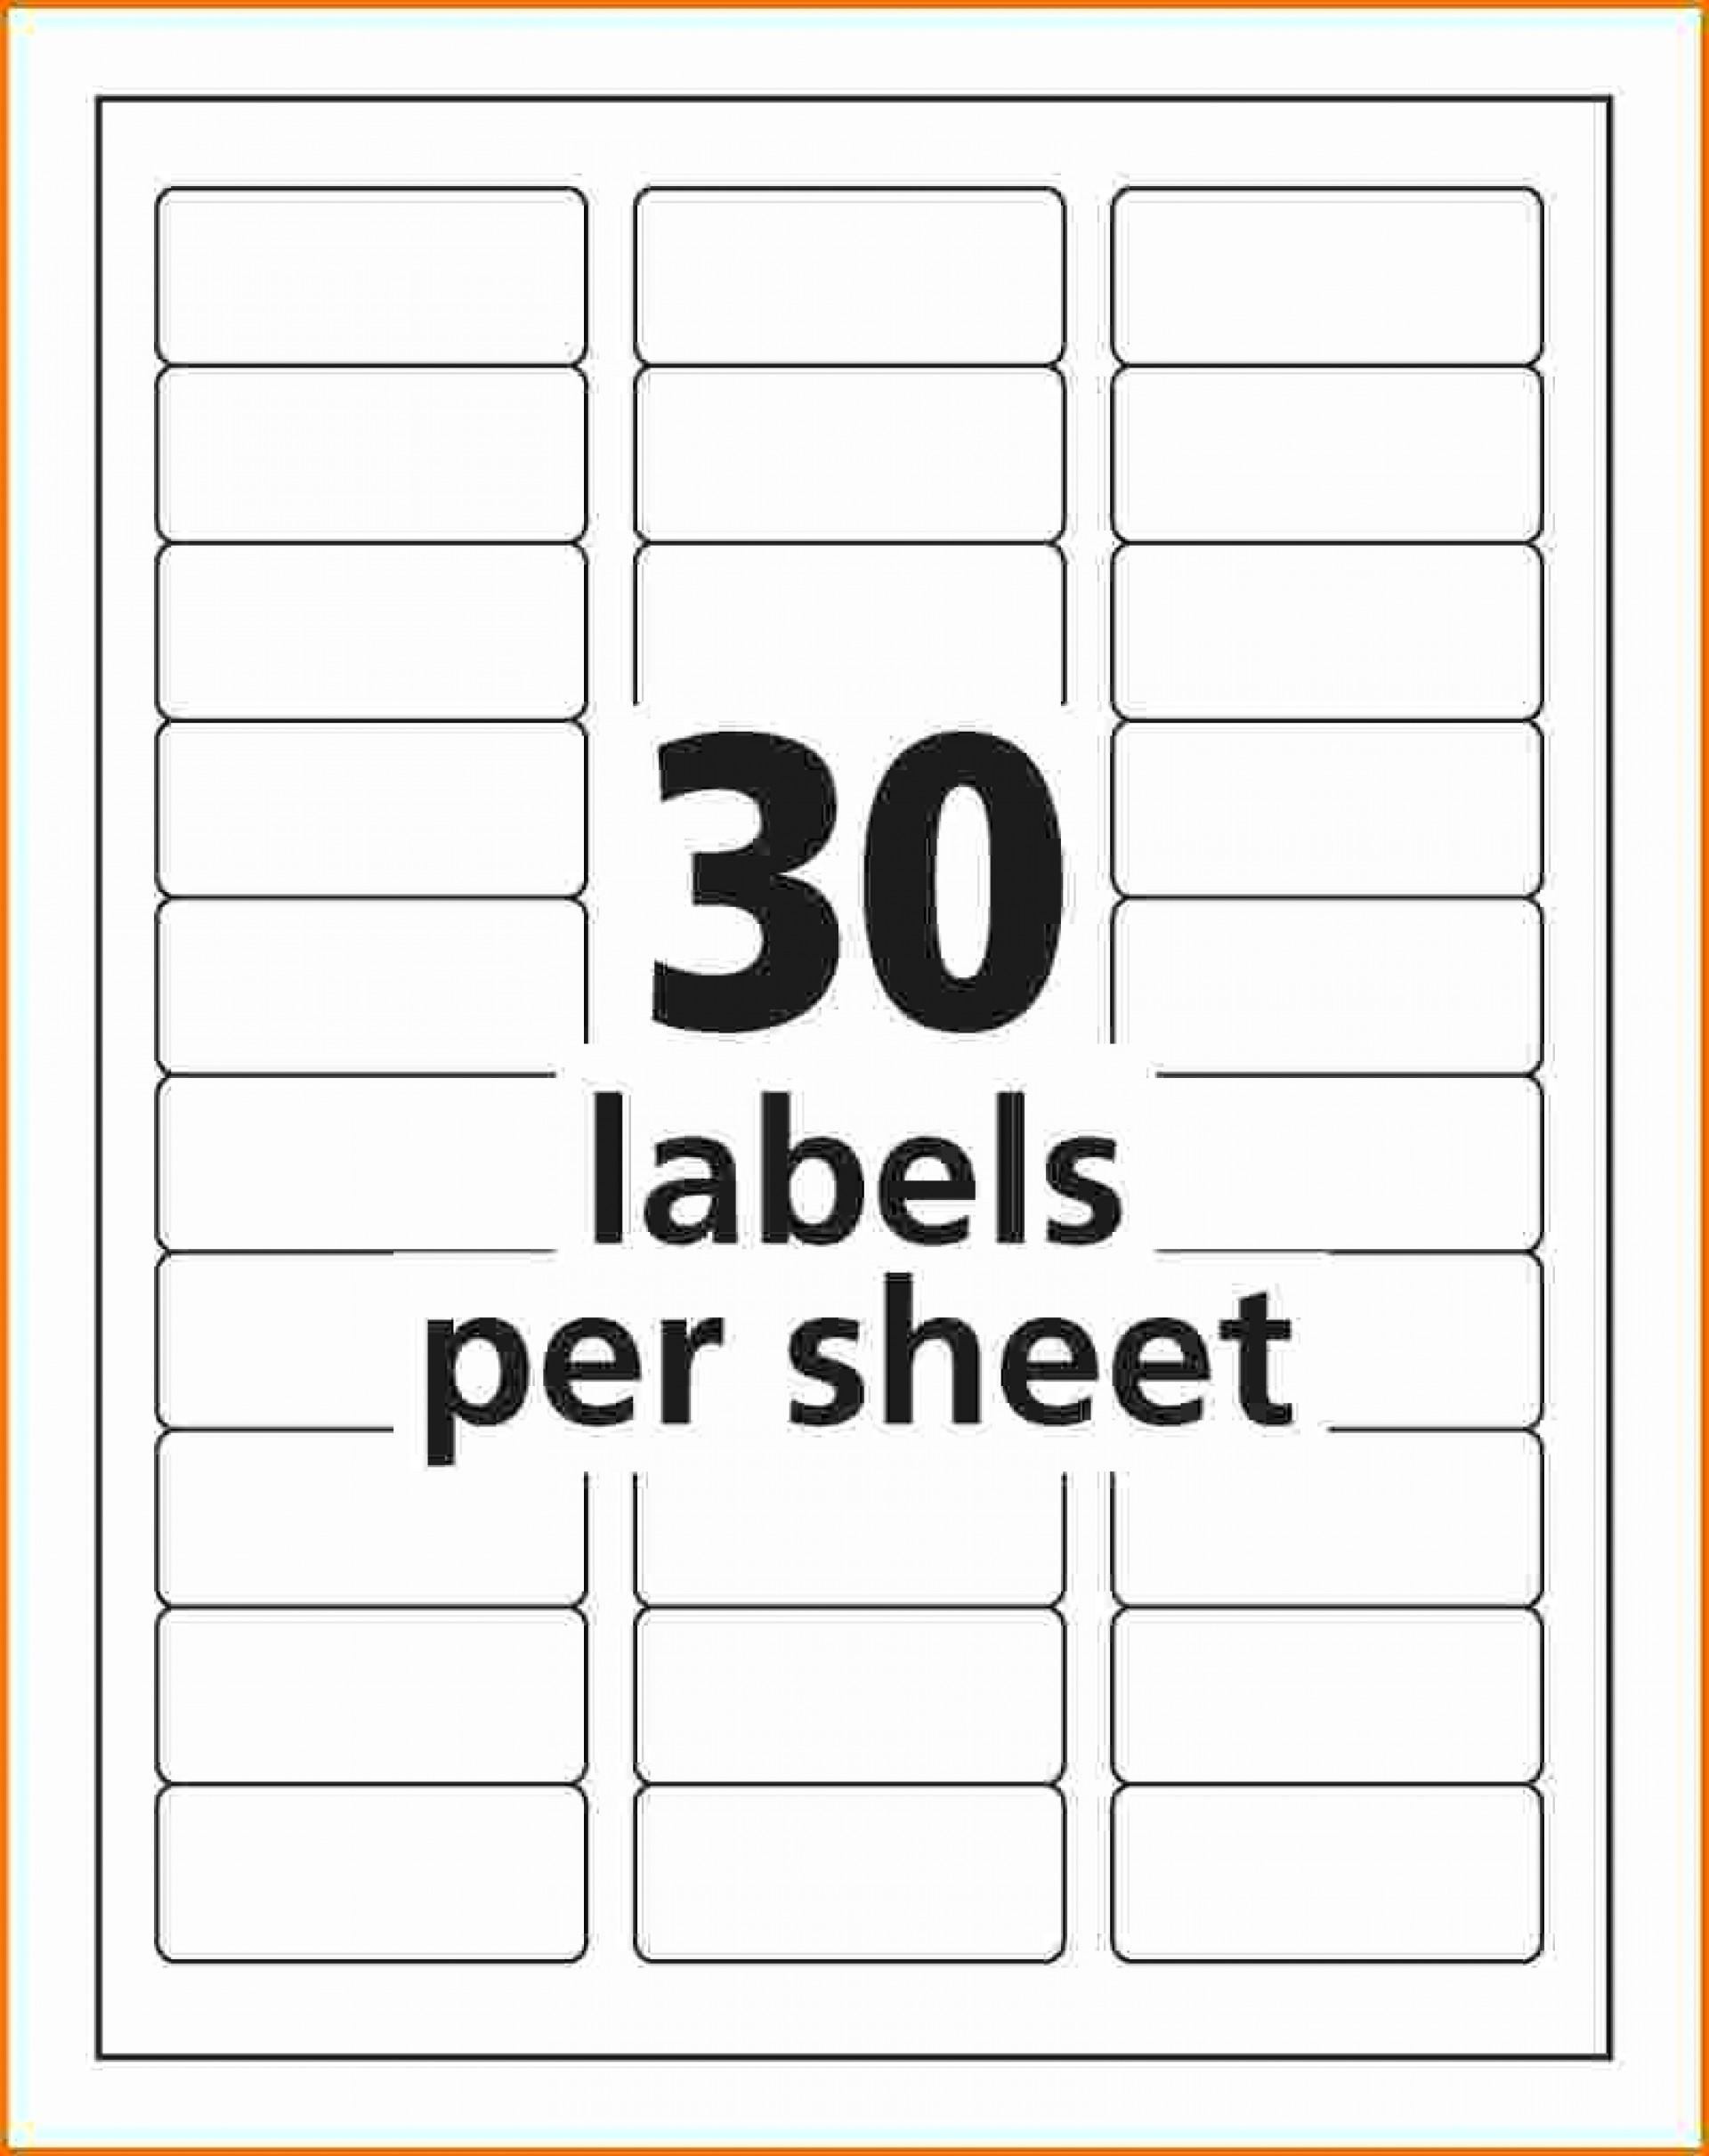 Free Template For Address Labels 20 Per Sheet